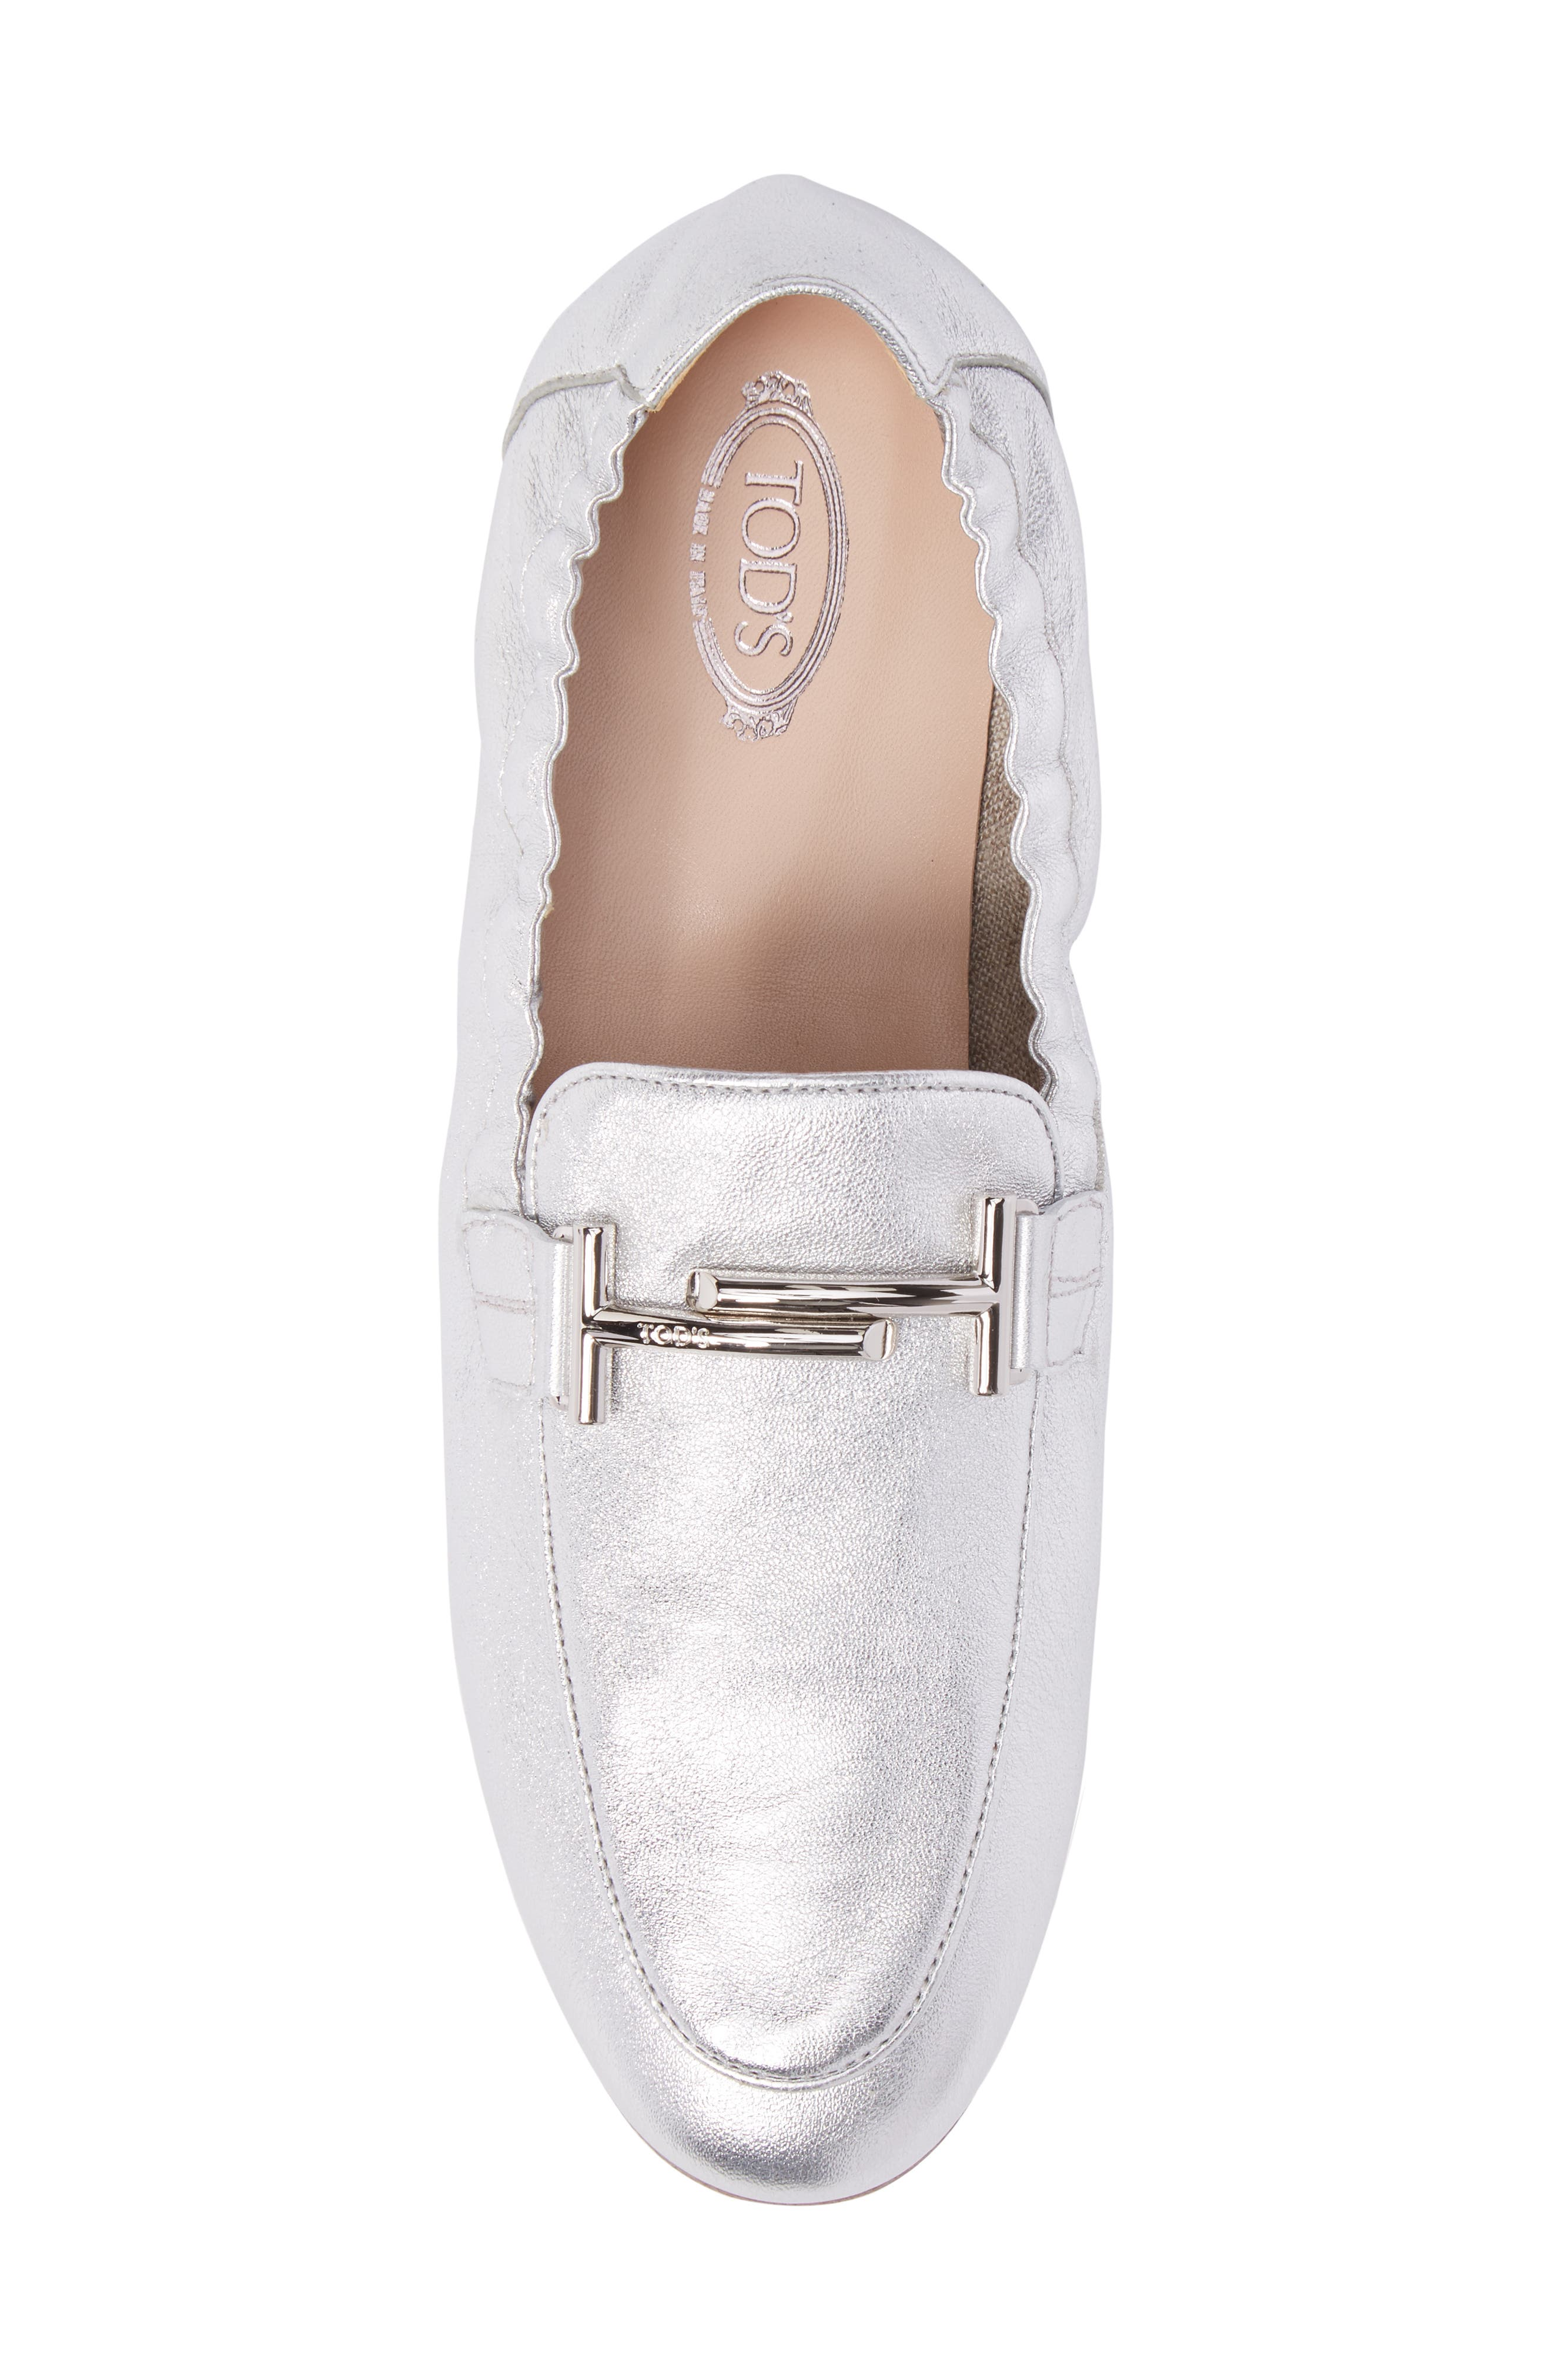 Double T Scrunch Loafer,                             Alternate thumbnail 5, color,                             Silver